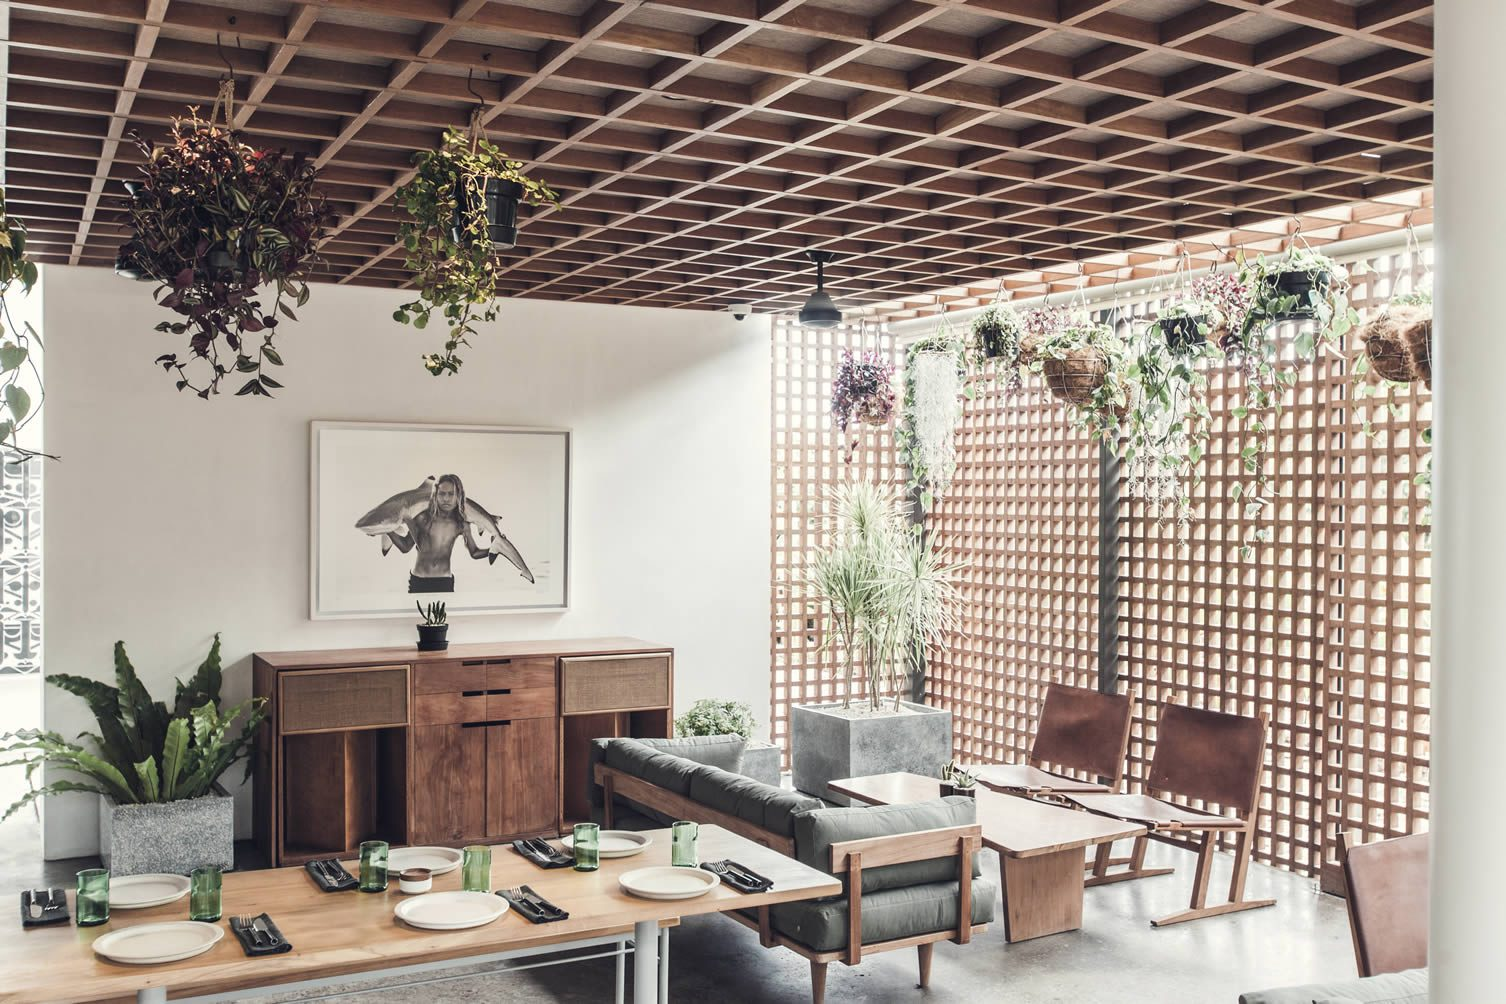 The Slow Bali Canggu Design And Art Hotel By George And